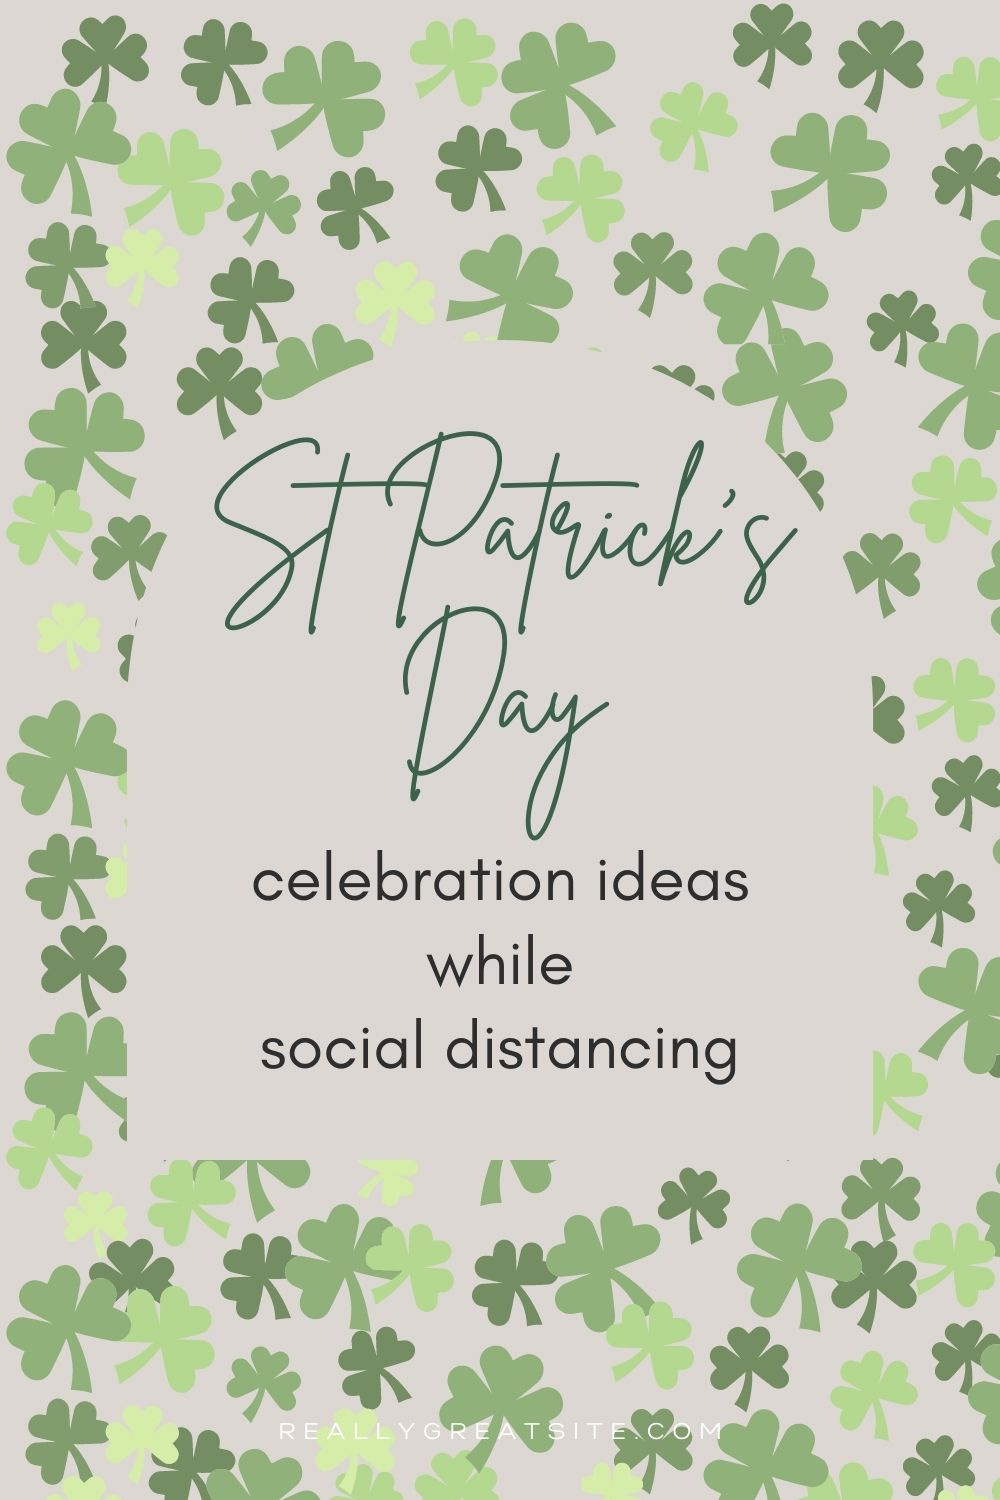 how to celebrate st patrick's day while social distancing